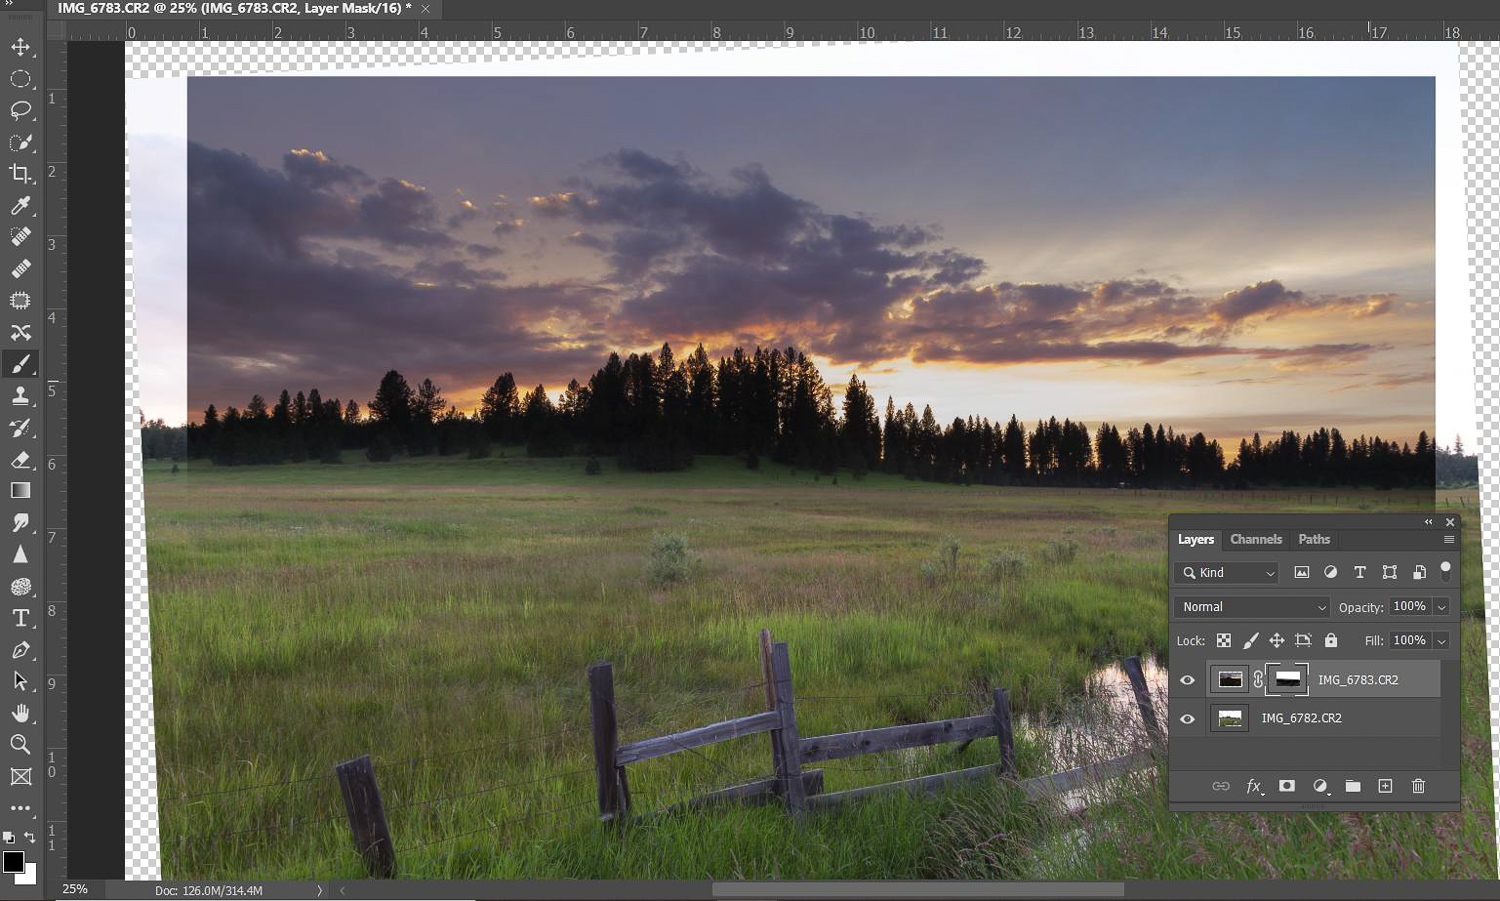 Tips for dramatic skies - Exposure Blending with two exposures in Photoshop